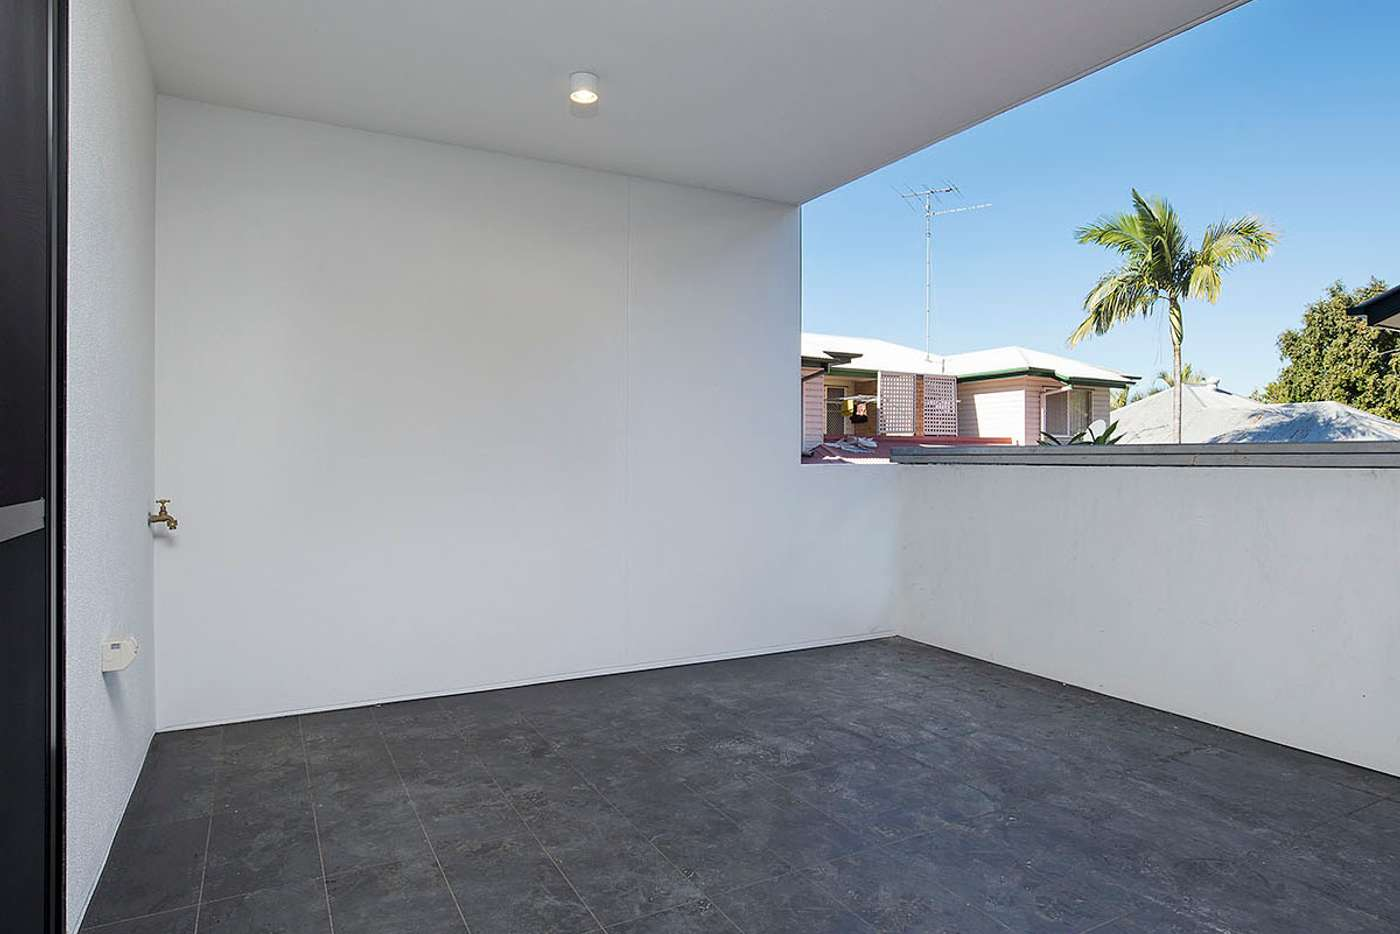 Sixth view of Homely apartment listing, 209/50 Bonython Street, Windsor QLD 4030